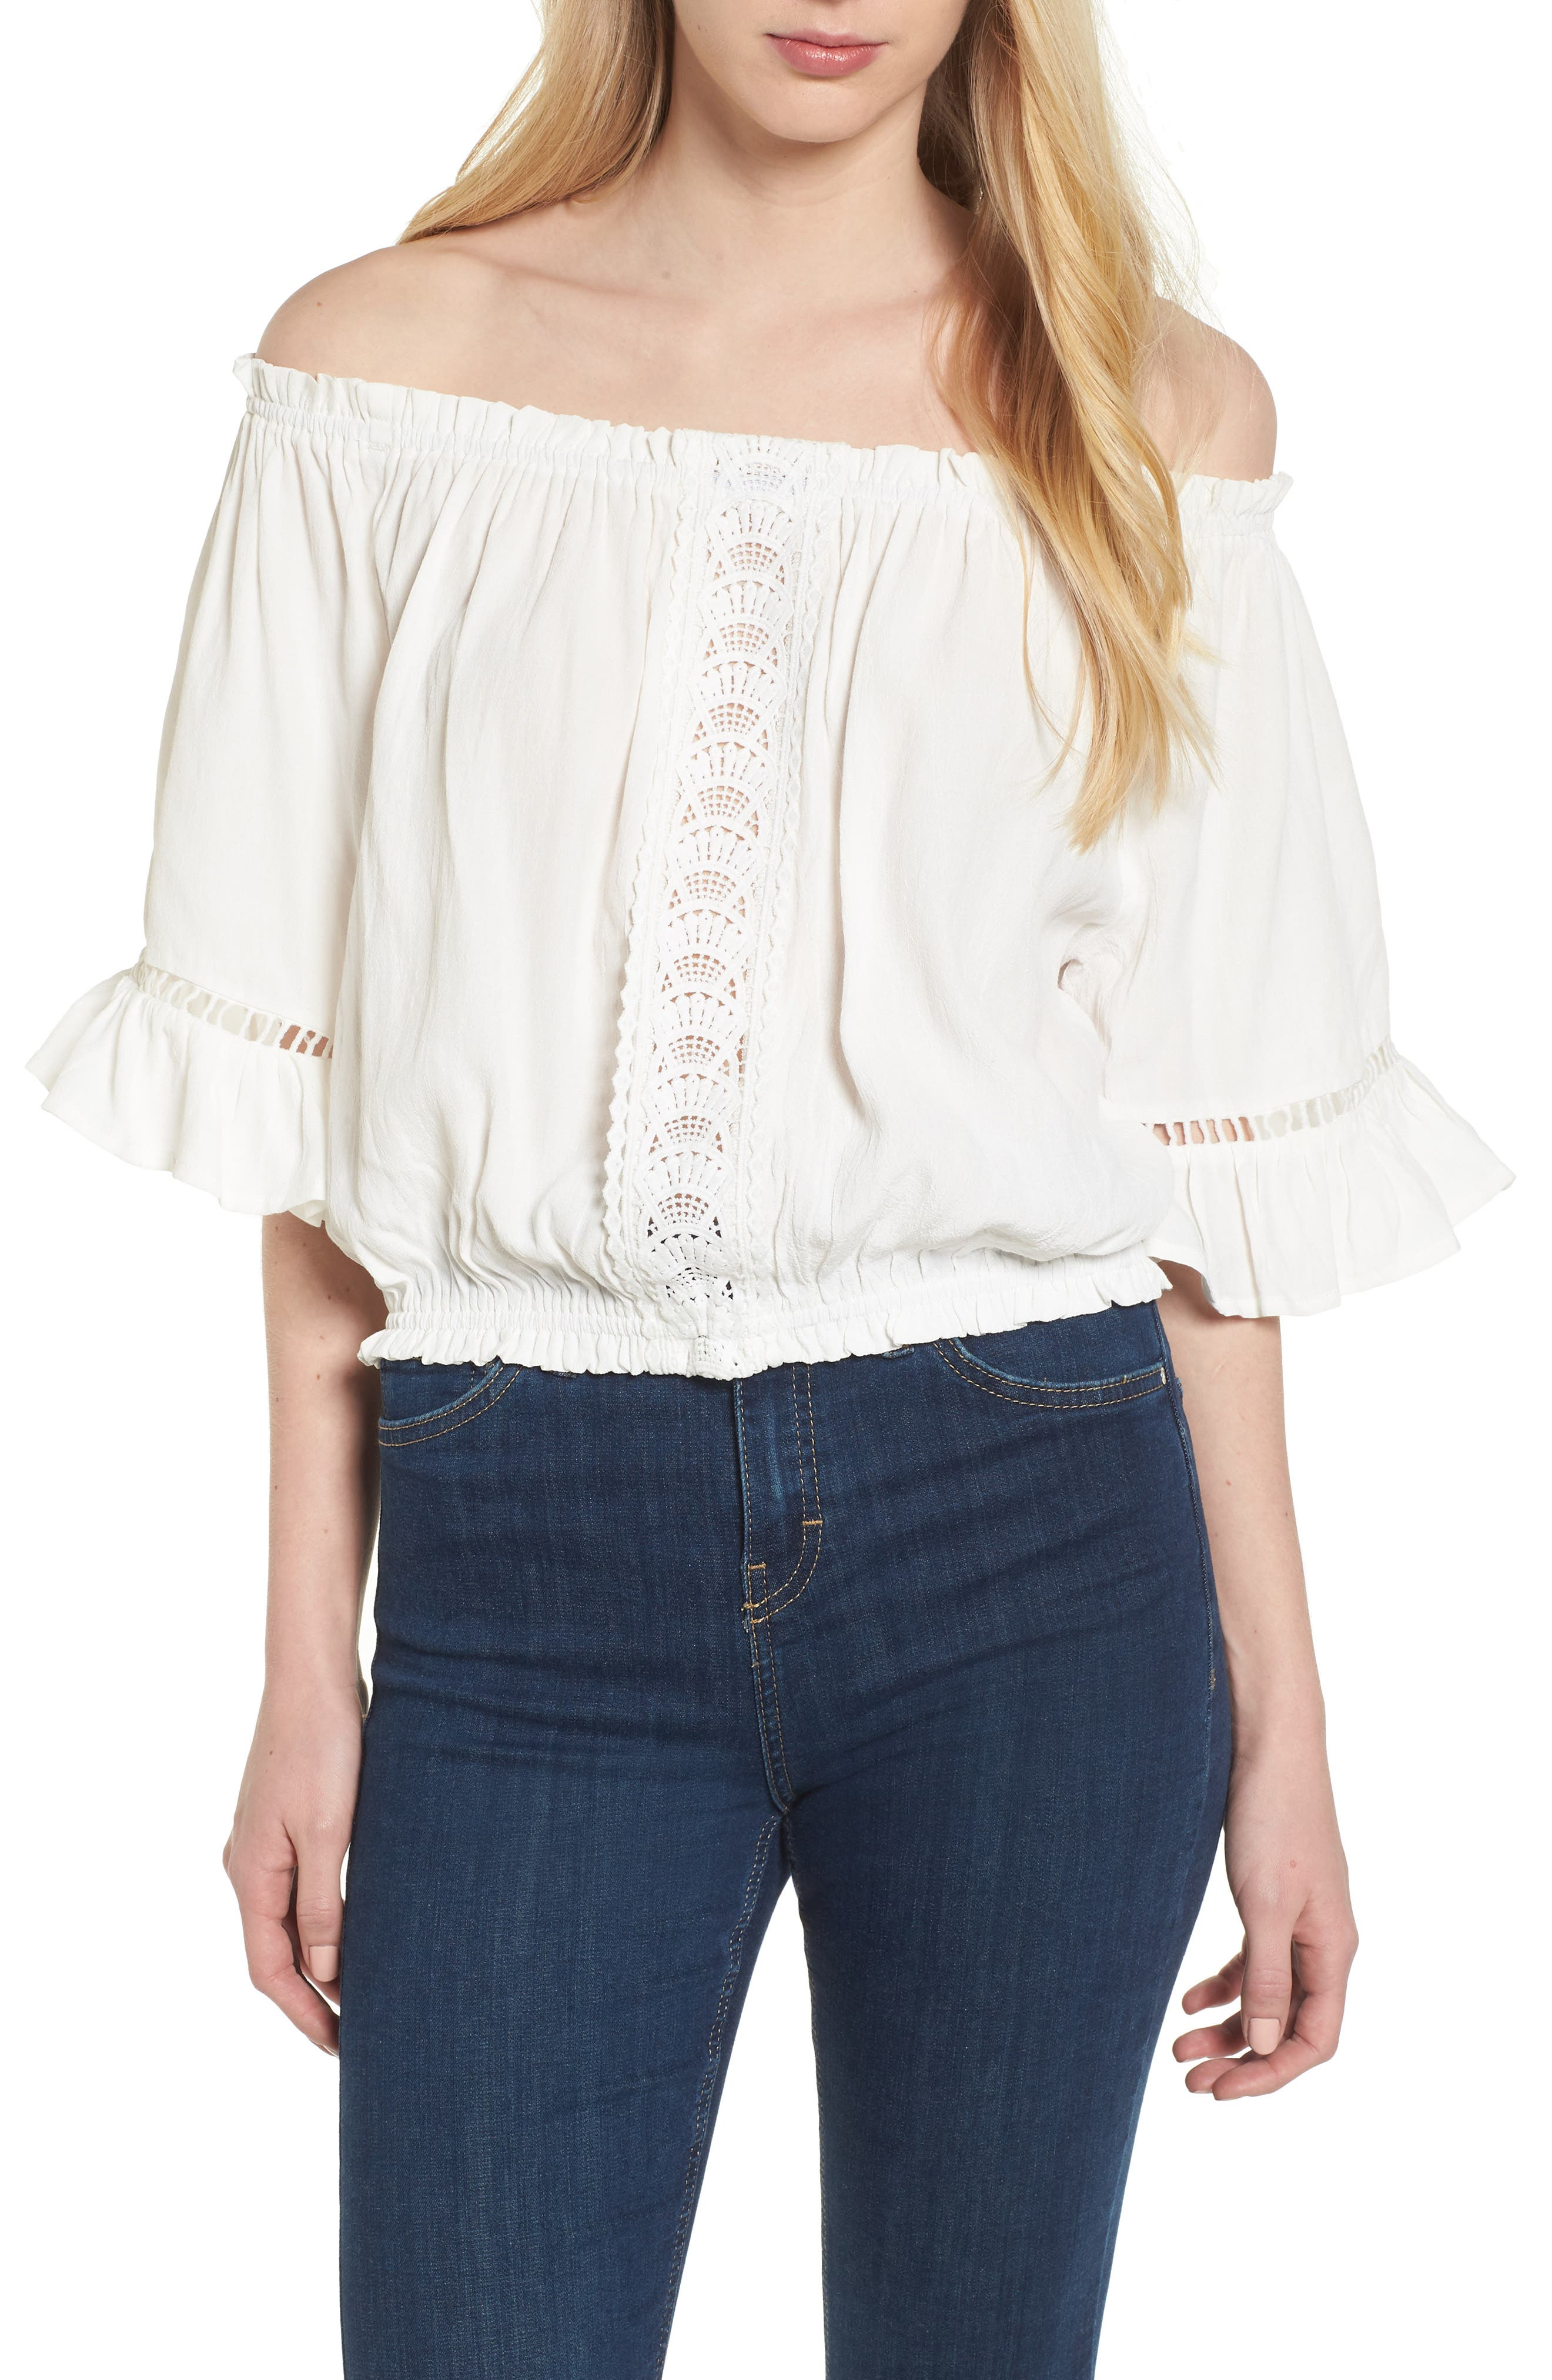 Bishop + Young Off the Shoulder Poet Top,                         Main,                         color, 100